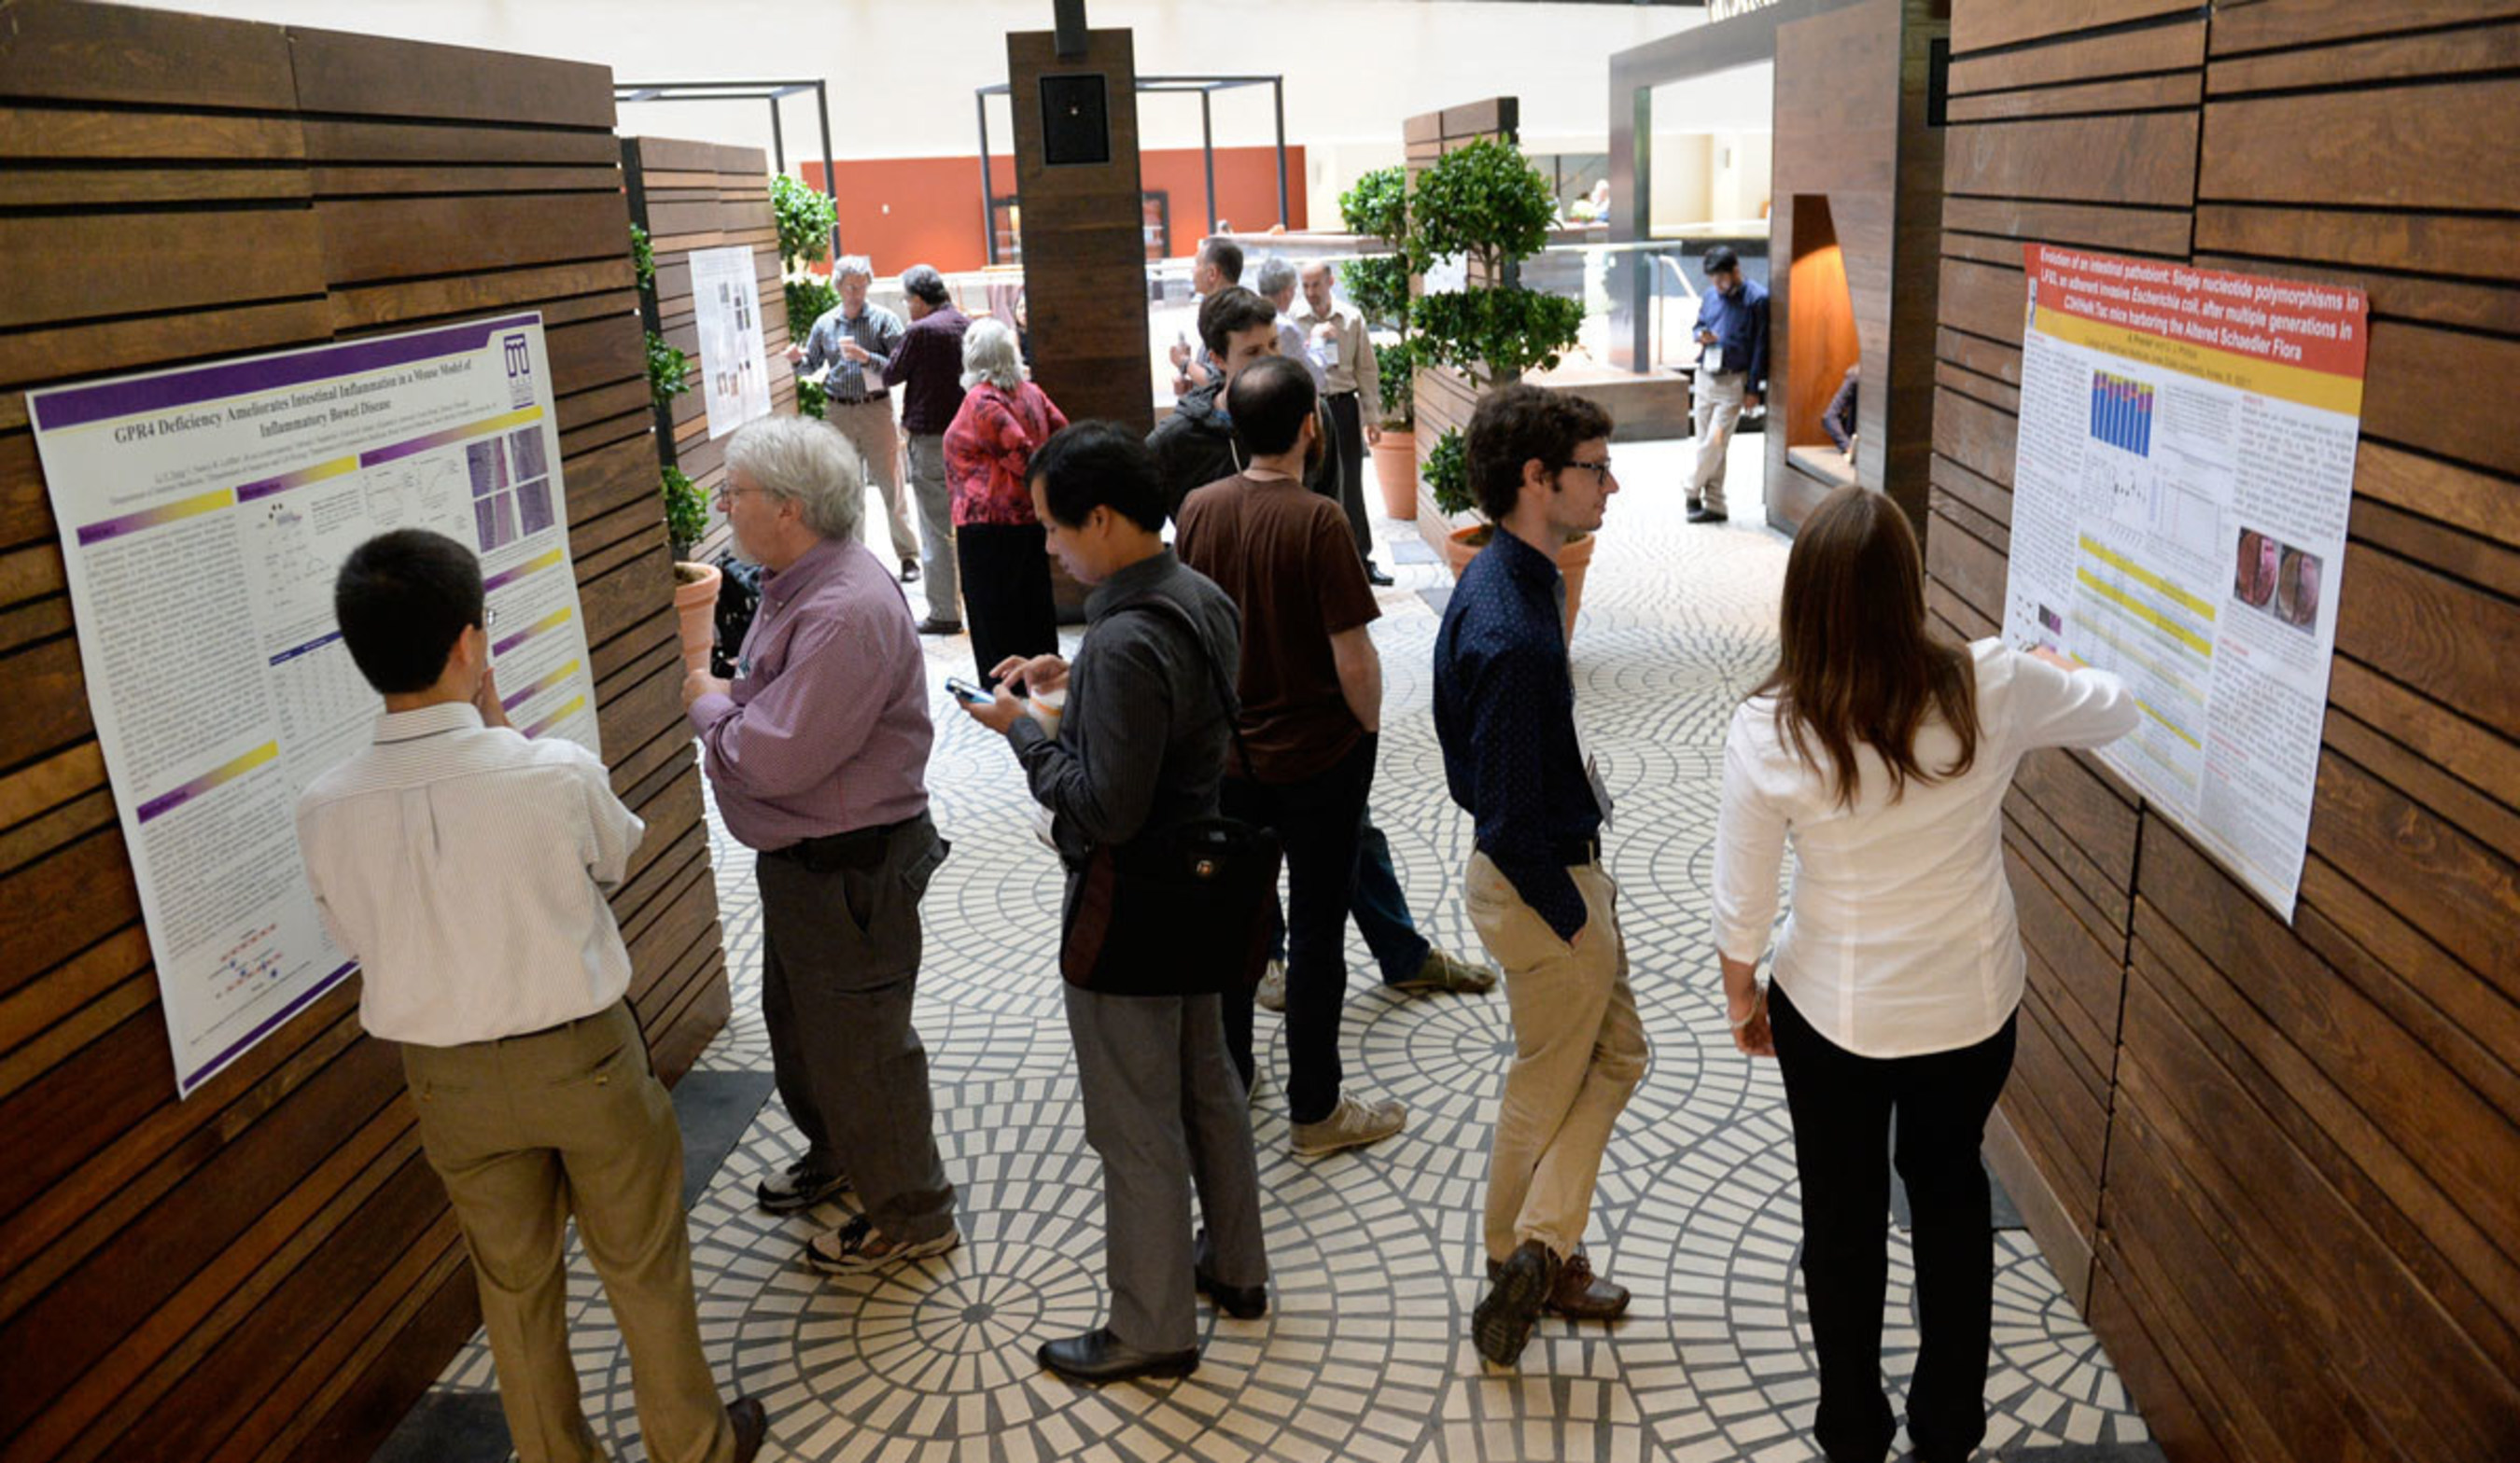 Investigators share their work and ideas with renowned guest speakers, international grantees and research colleagues during poster sessions at the Rainin Foundation's Innovations Symposium.